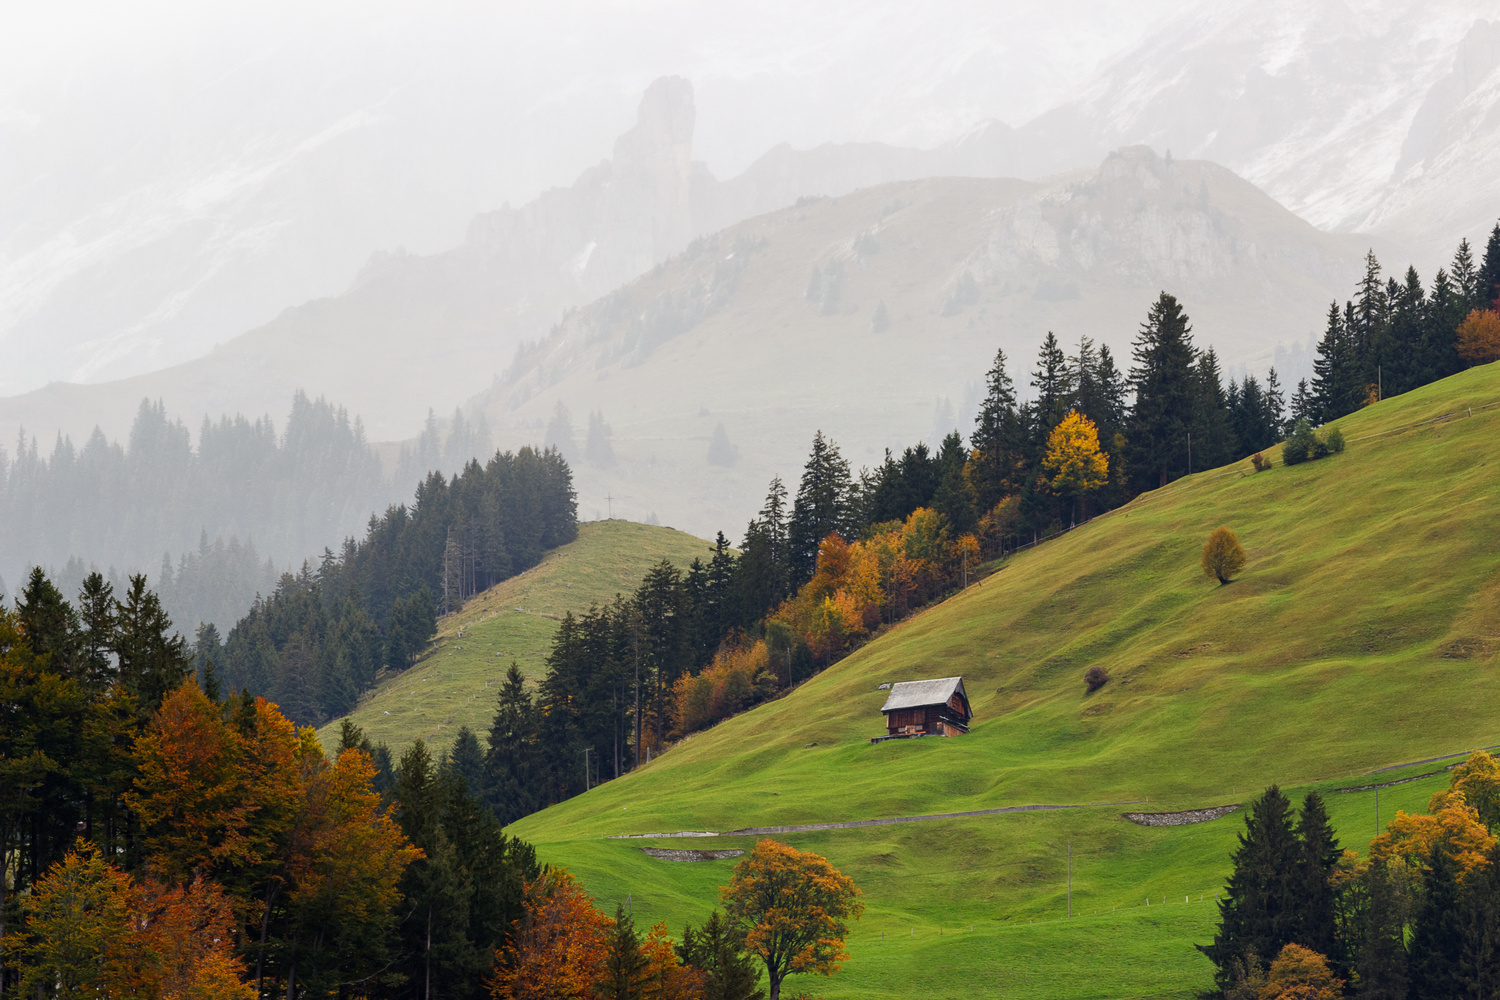 The Hut on the mountain side by Jagmeet Sanga